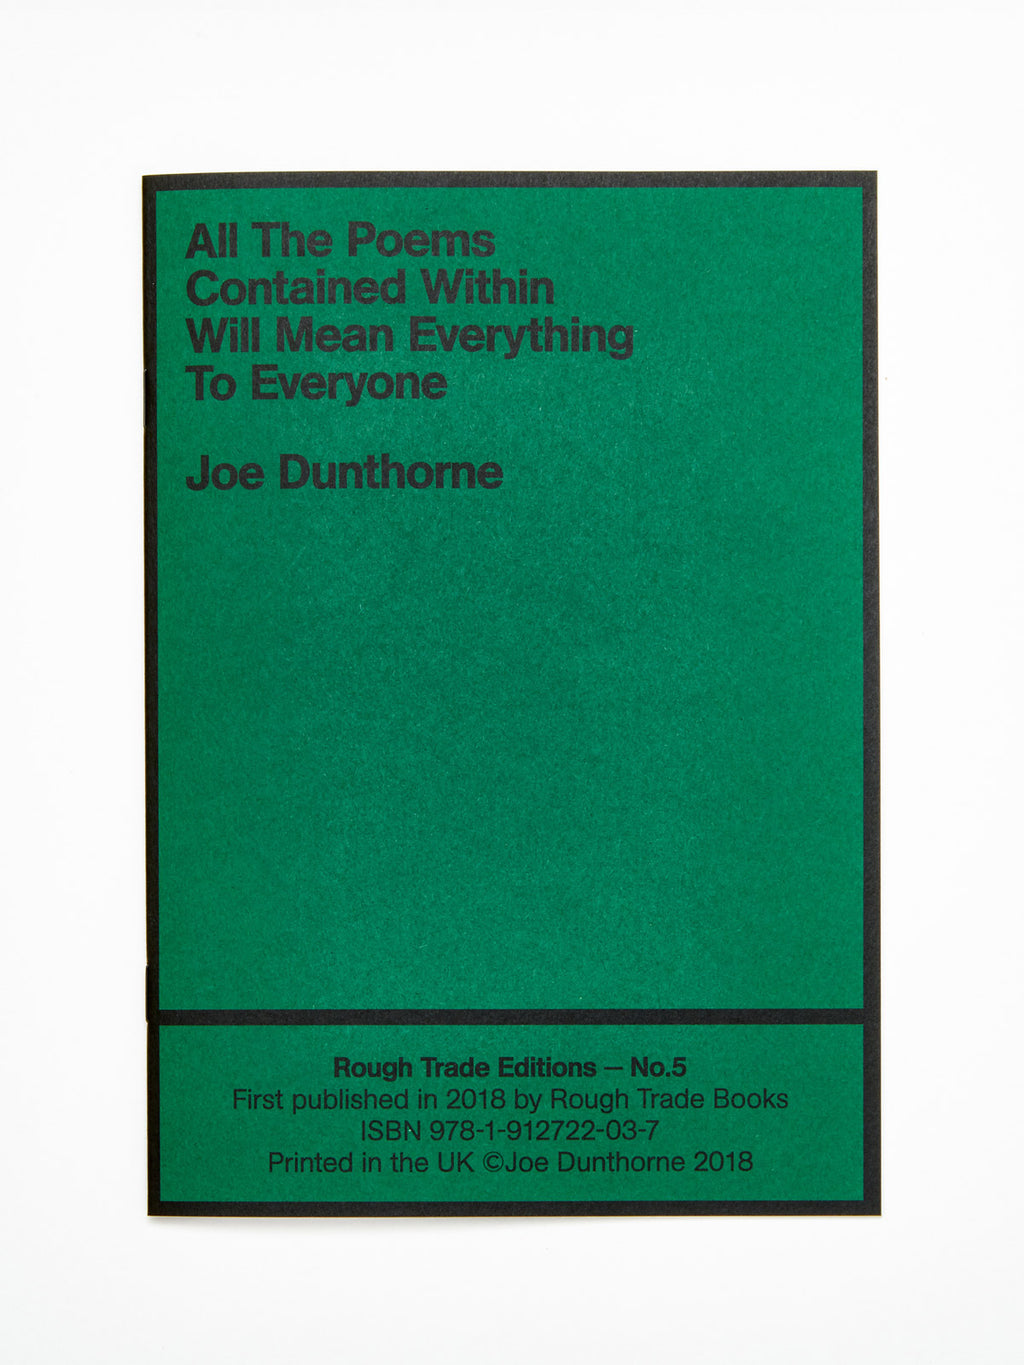 Joe Dunthorne - All The Poems Contained Within Will Mean Everything To Everyone